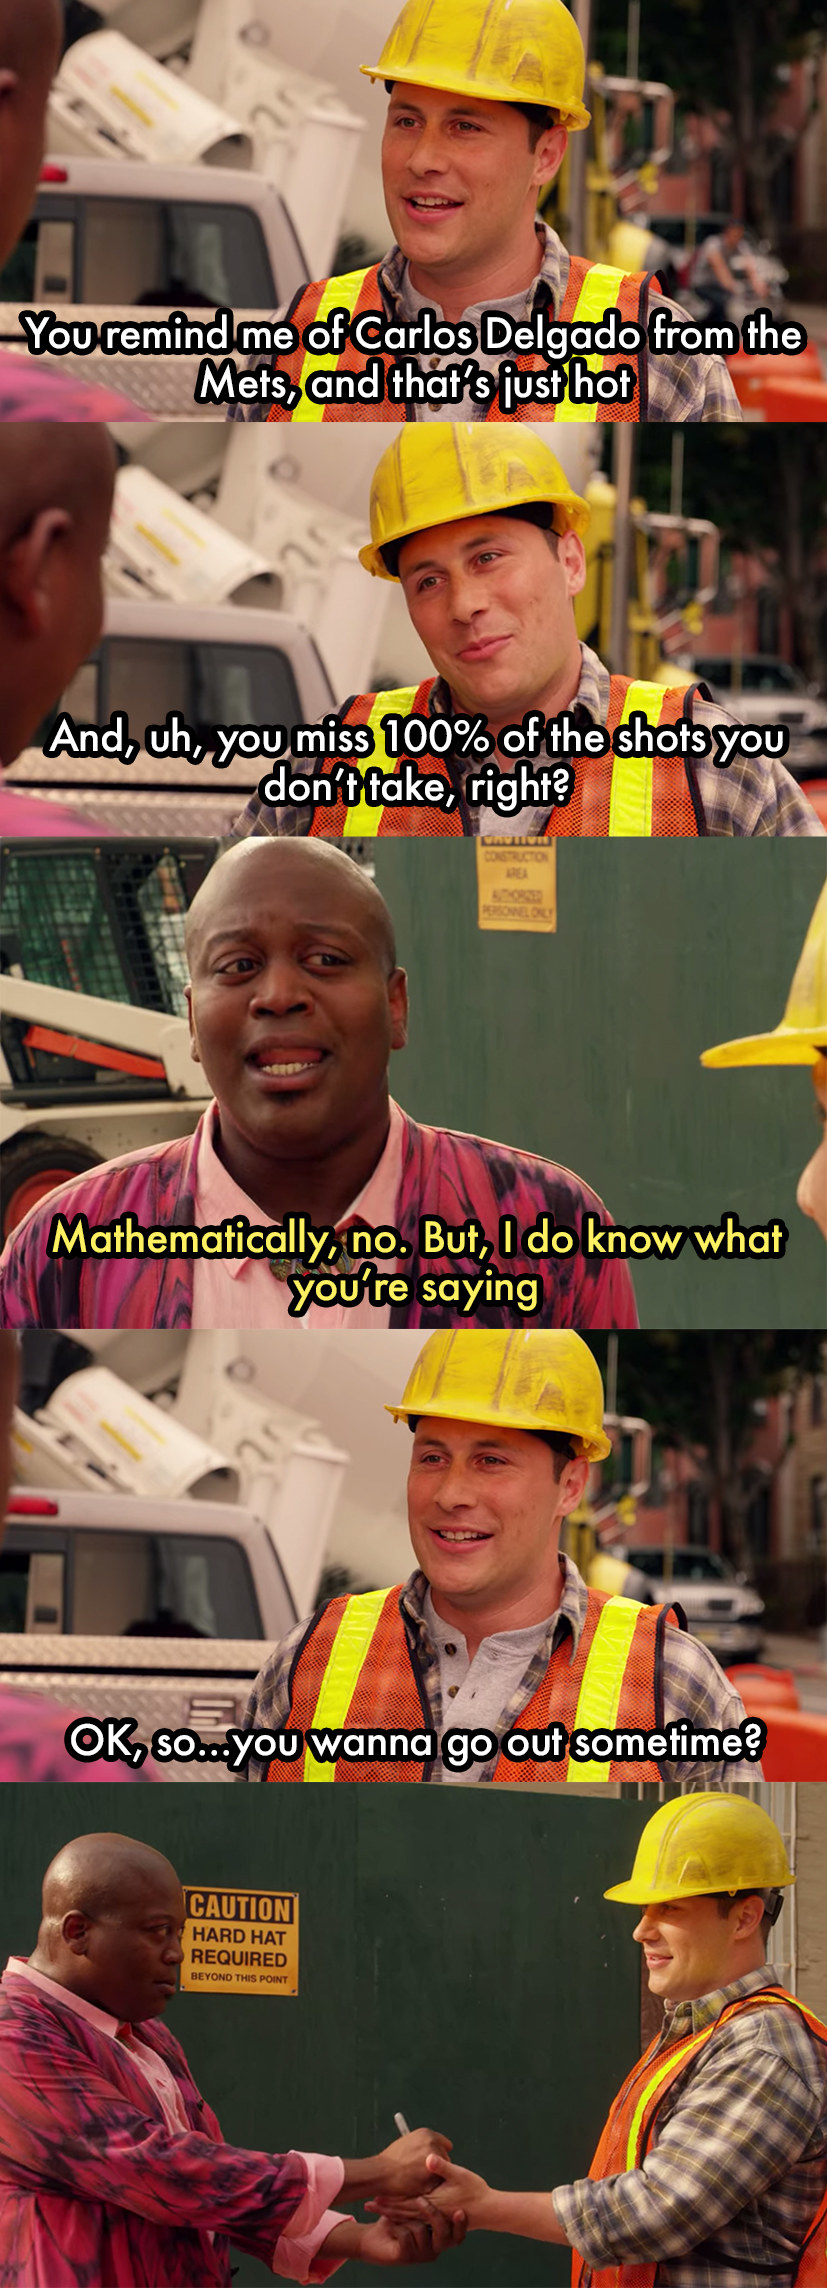 """Mikey Politano from """"Unbreakable Kimmy Schmidt"""" asking out Titus Andromedon by saying """"You remind me of Carlos Delgado from the Mets, and that's just hot."""" Titus ends up giving Mikey his number"""